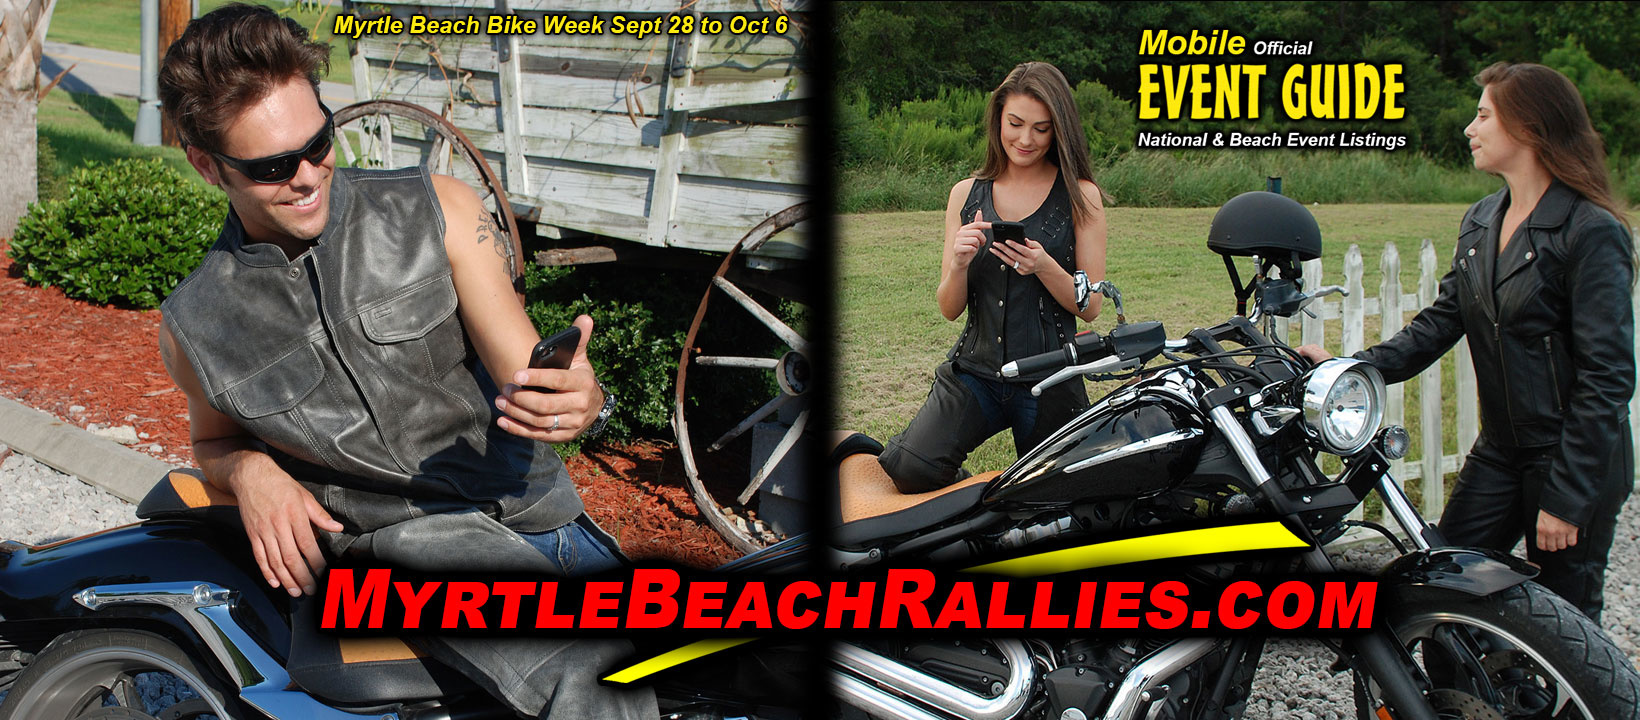 Are You Ready?! Myrtle Beach Bike Week is Here!